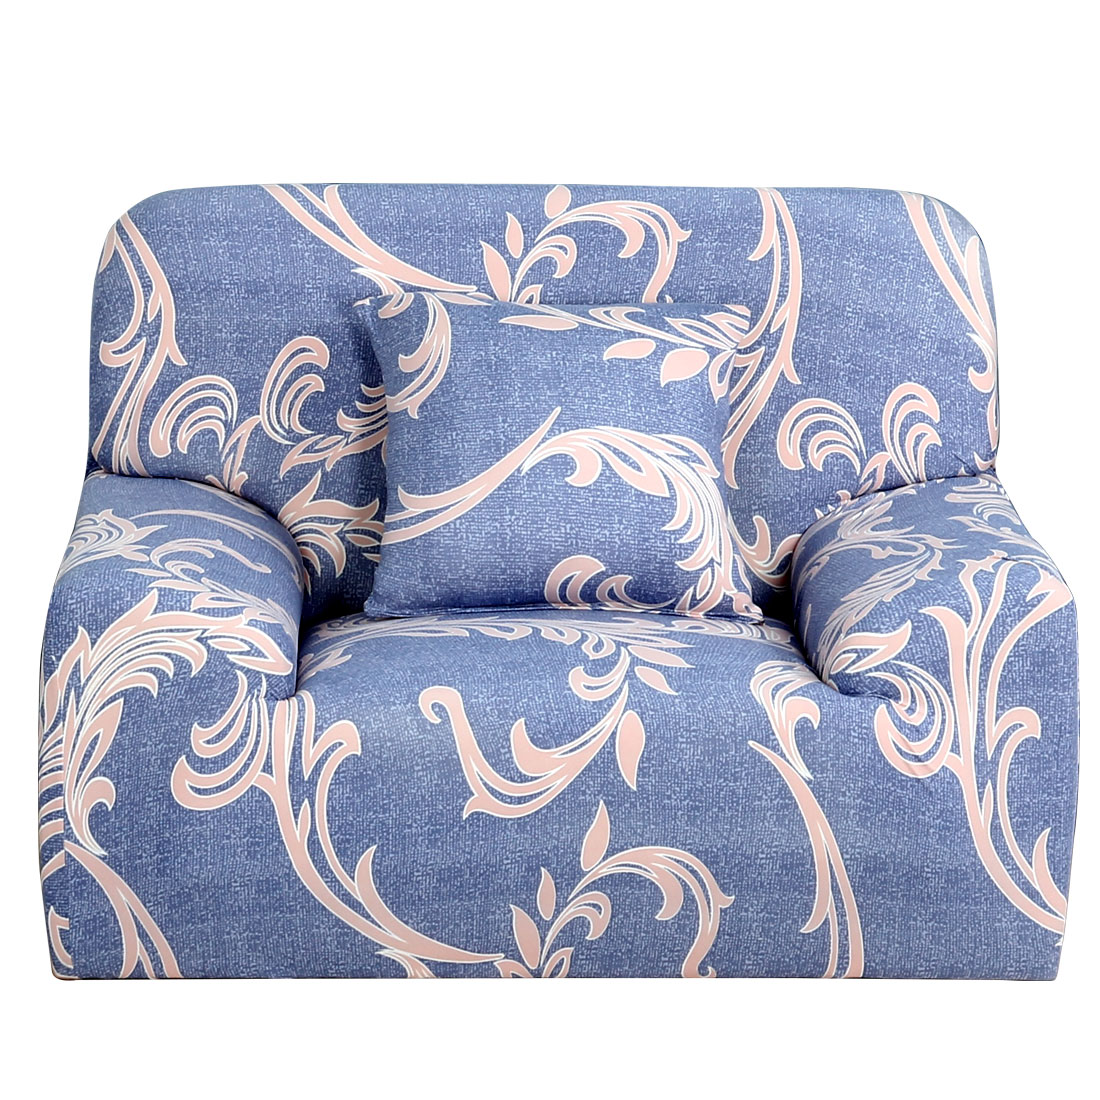 Stretch Person Chair Cover Loveseat Sofa Couch Slipcovers Protector